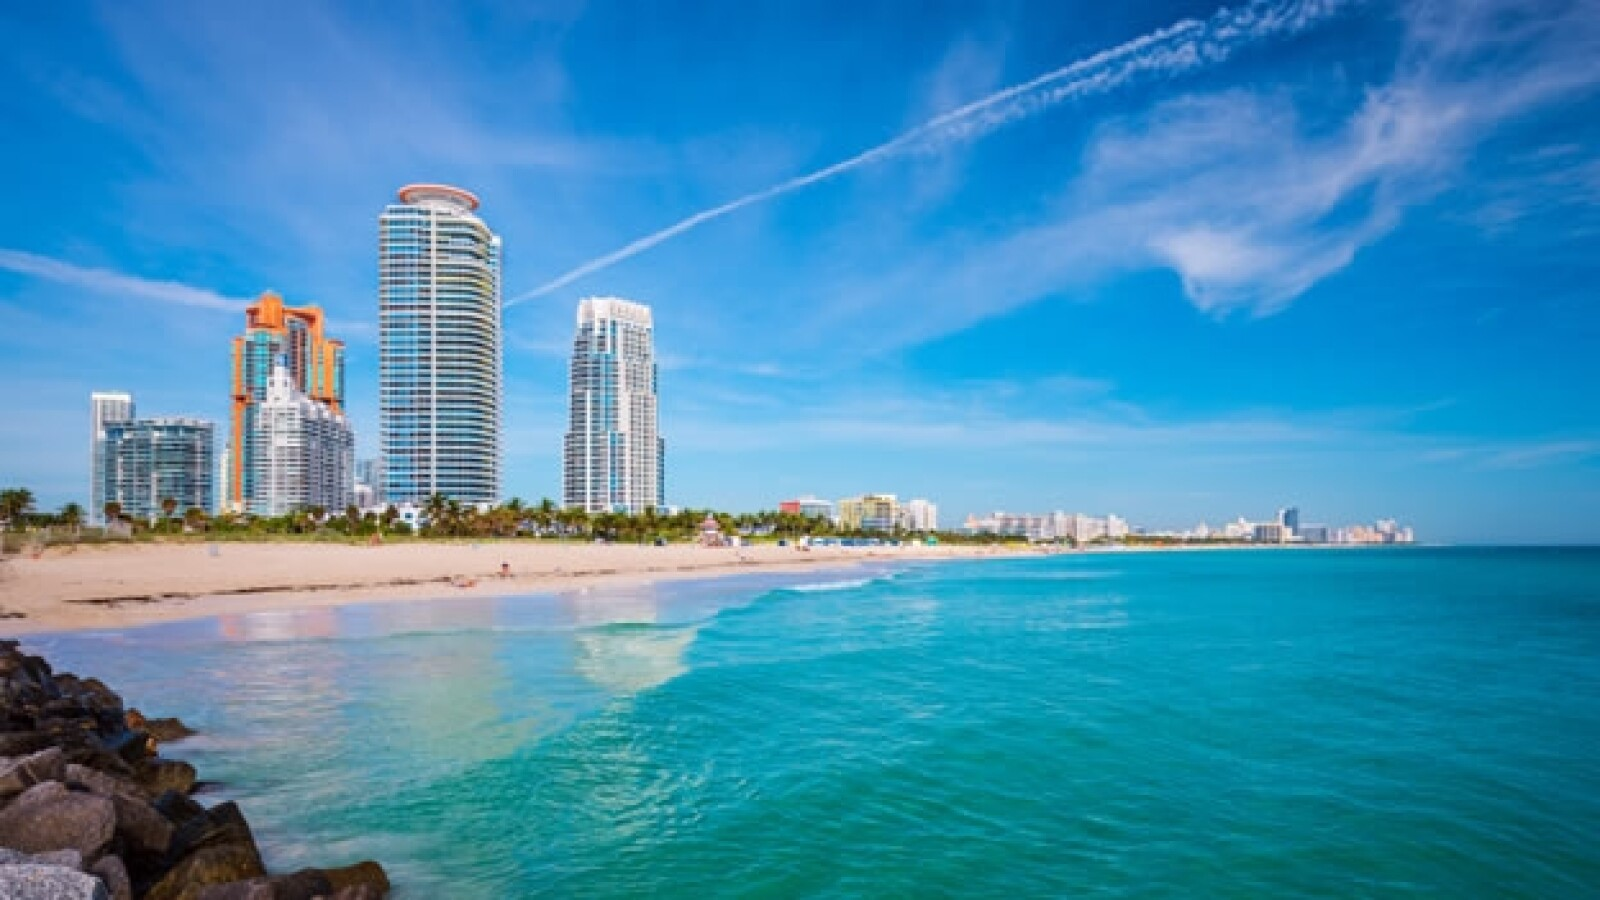 miami beach estados unidos